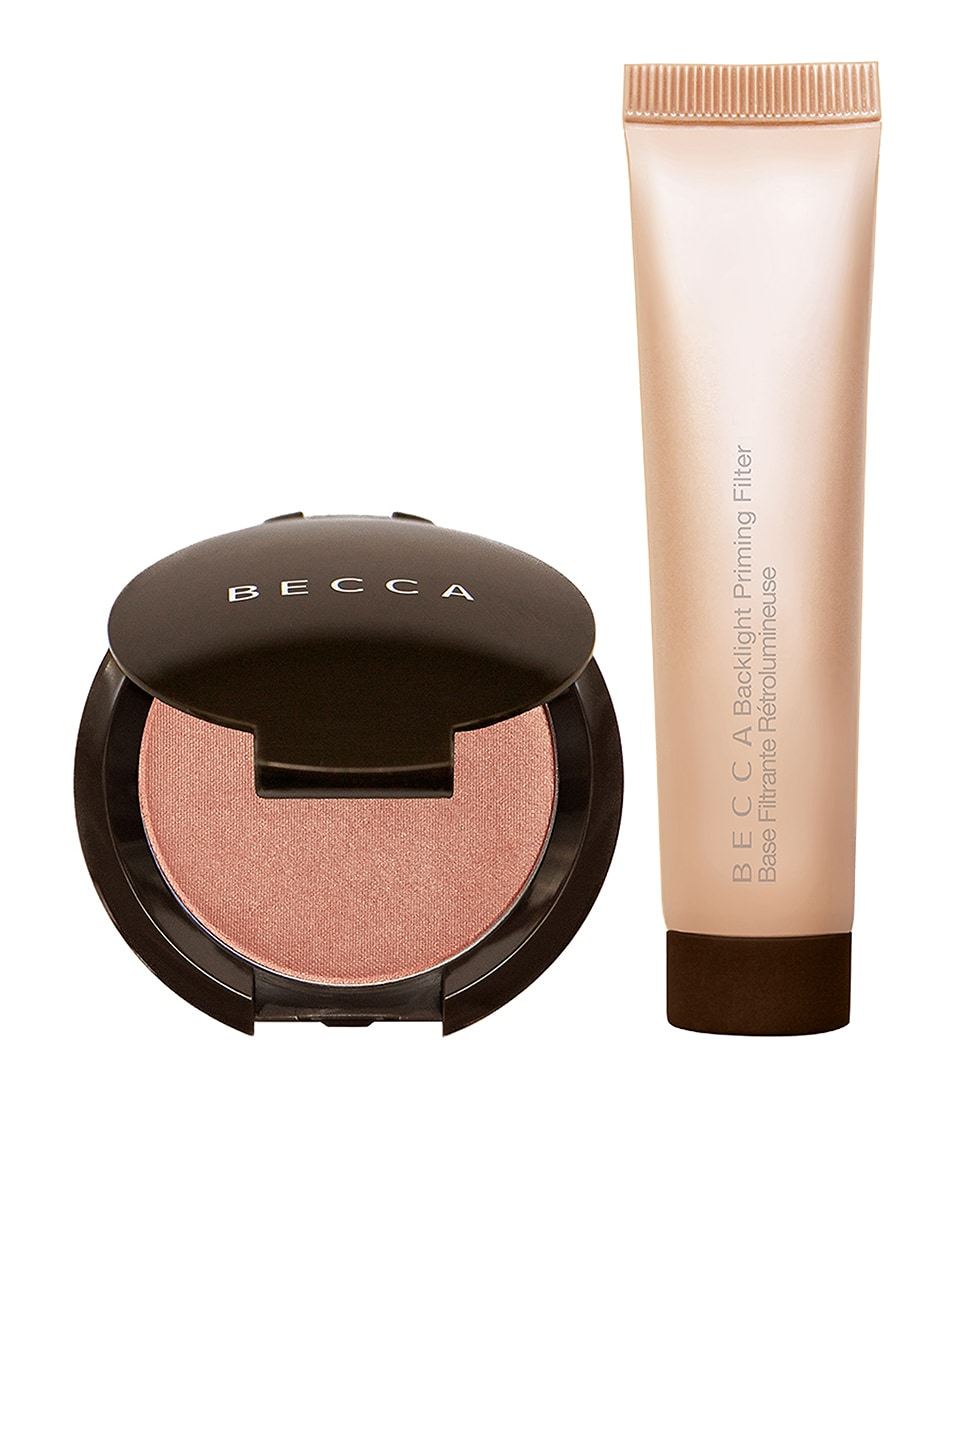 BECCA KIT FACIAL ICONICS